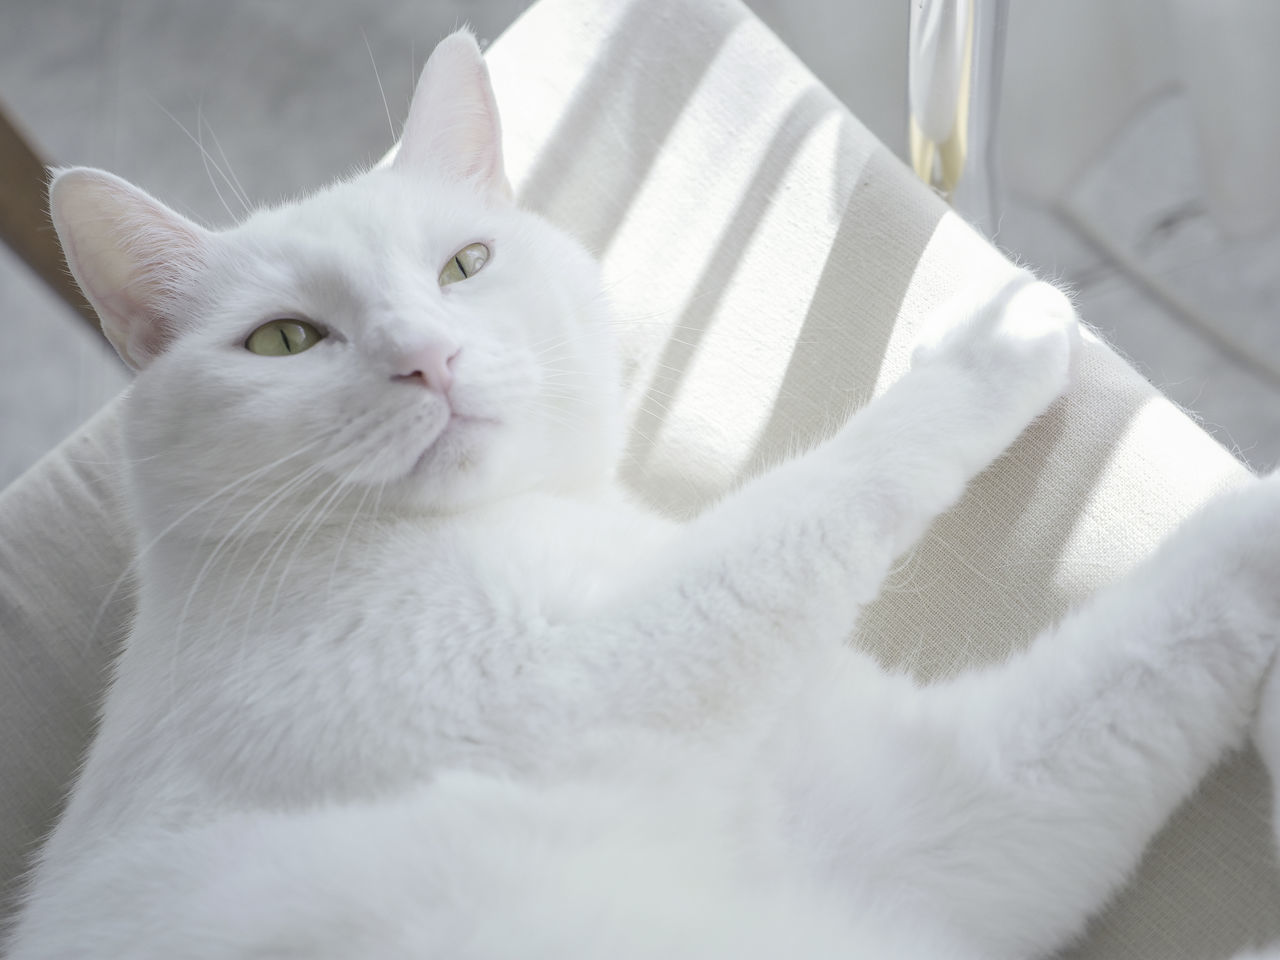 Cat Comfortable Comfy  Cute Cat Domestic Animal Domestic Cat Feline Feline Portraits Indoor Lovely Cat Paws Paws And Purrs Pet Relax Relaxing Relaxing Time Sunny Whiskers White Cat White Color